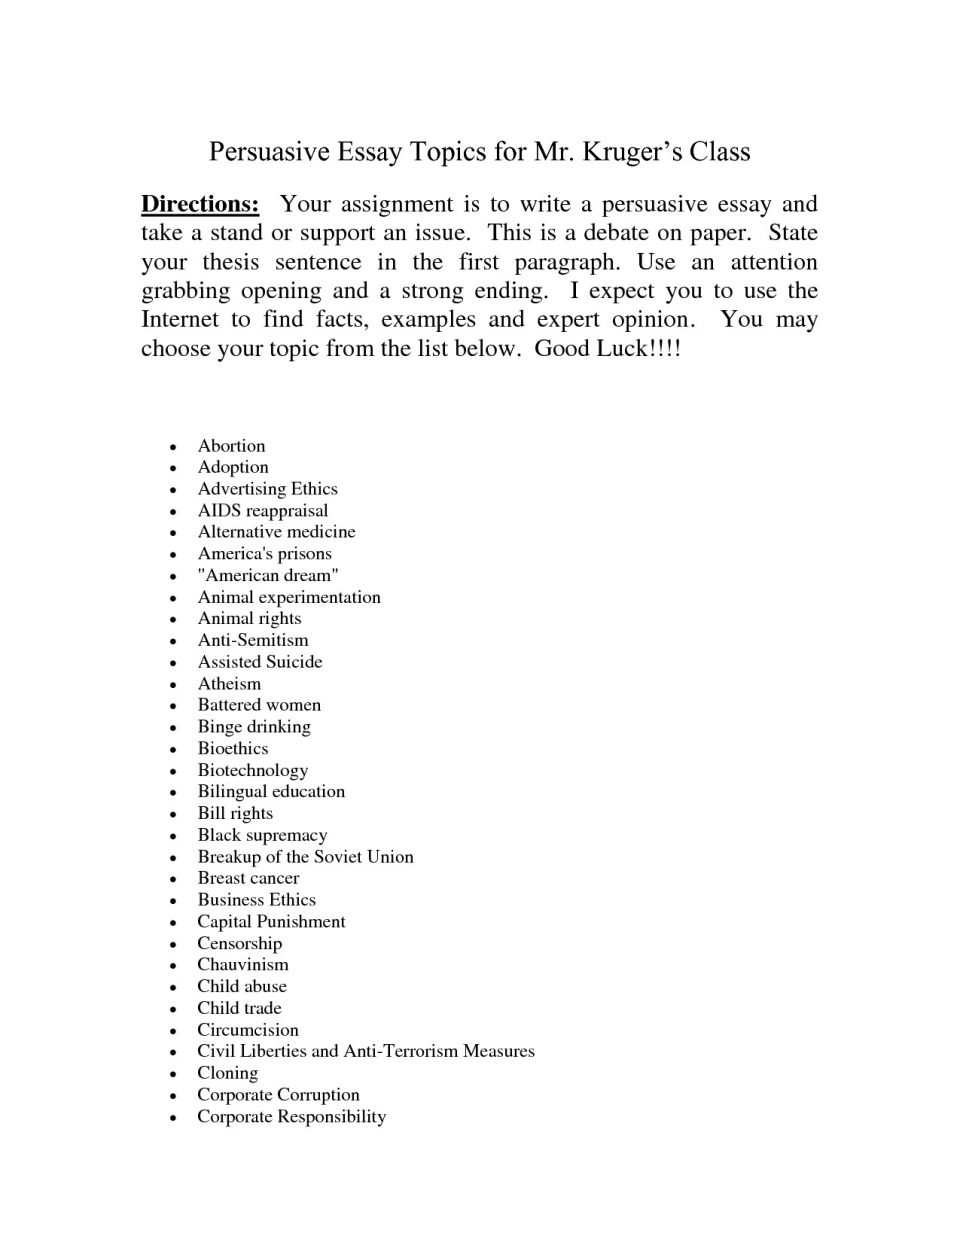 012 Research Paper Topics To Write On Topic For Essay Barca Fontanacountryinn Within Good Persuasive Narrative Abo Easy About Personal Descriptive Fearsome A Fun Ideas Full